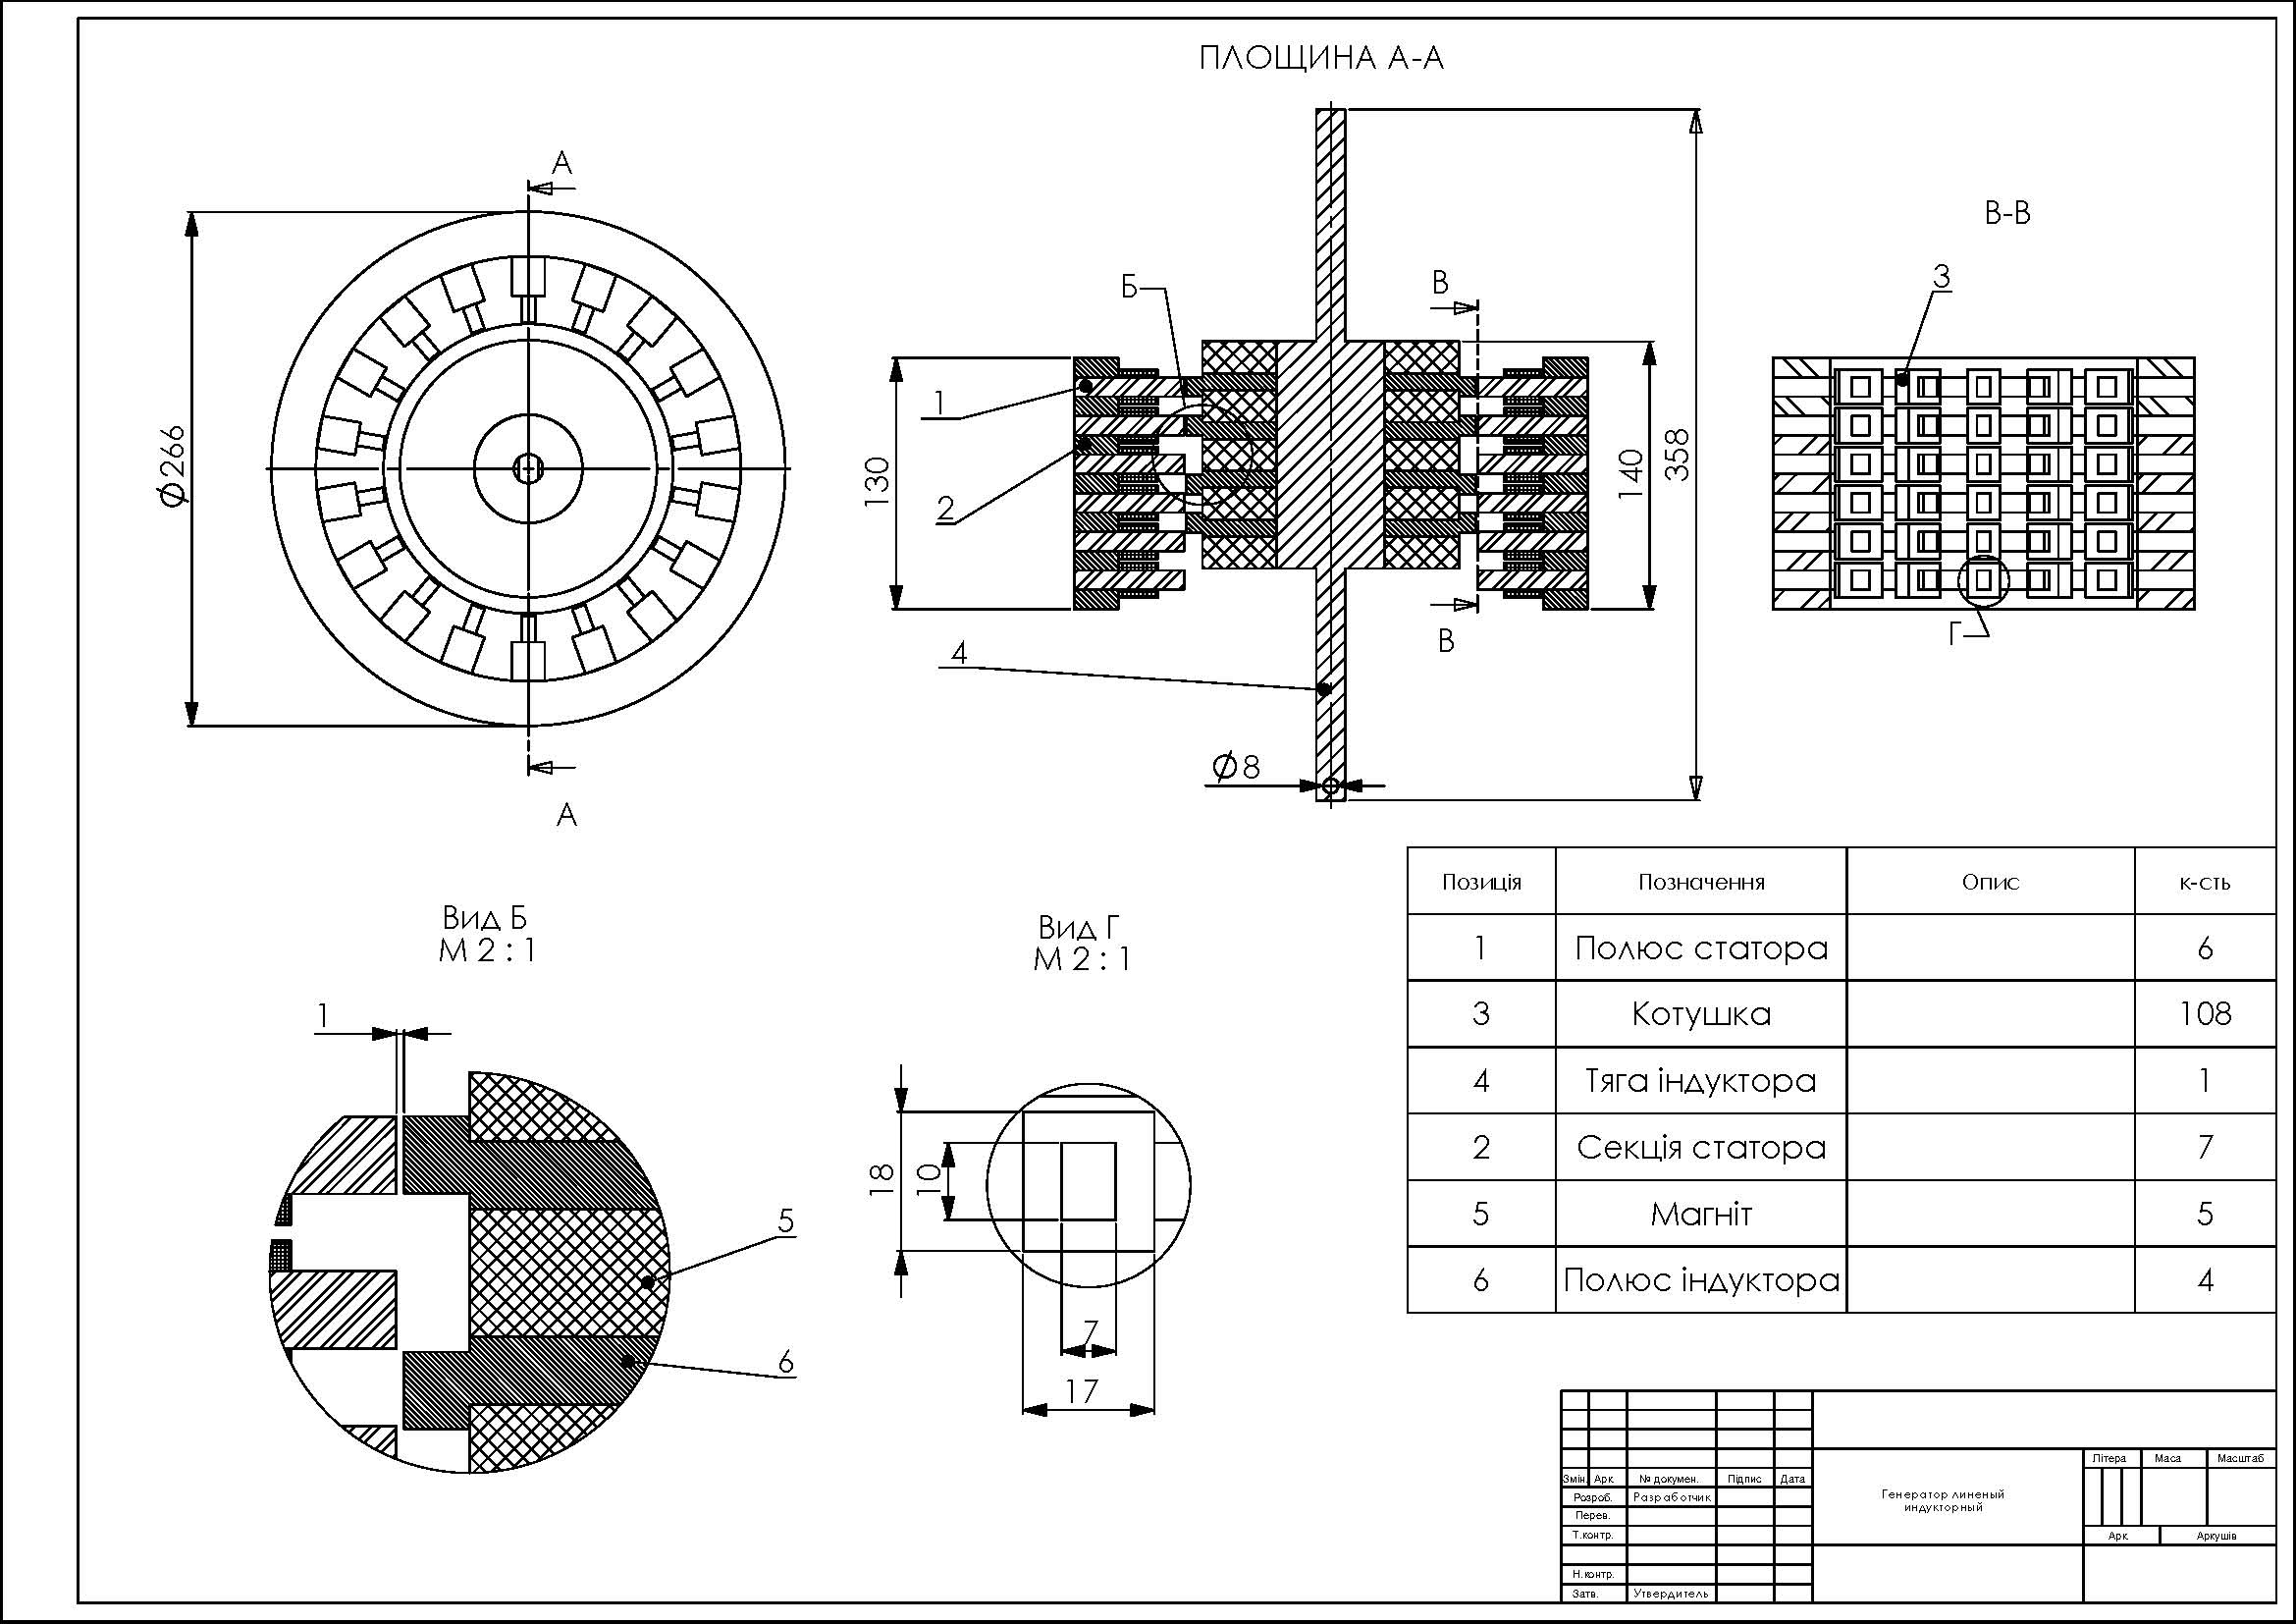 Linear induction generator design 28 images free for Linear induction motor design